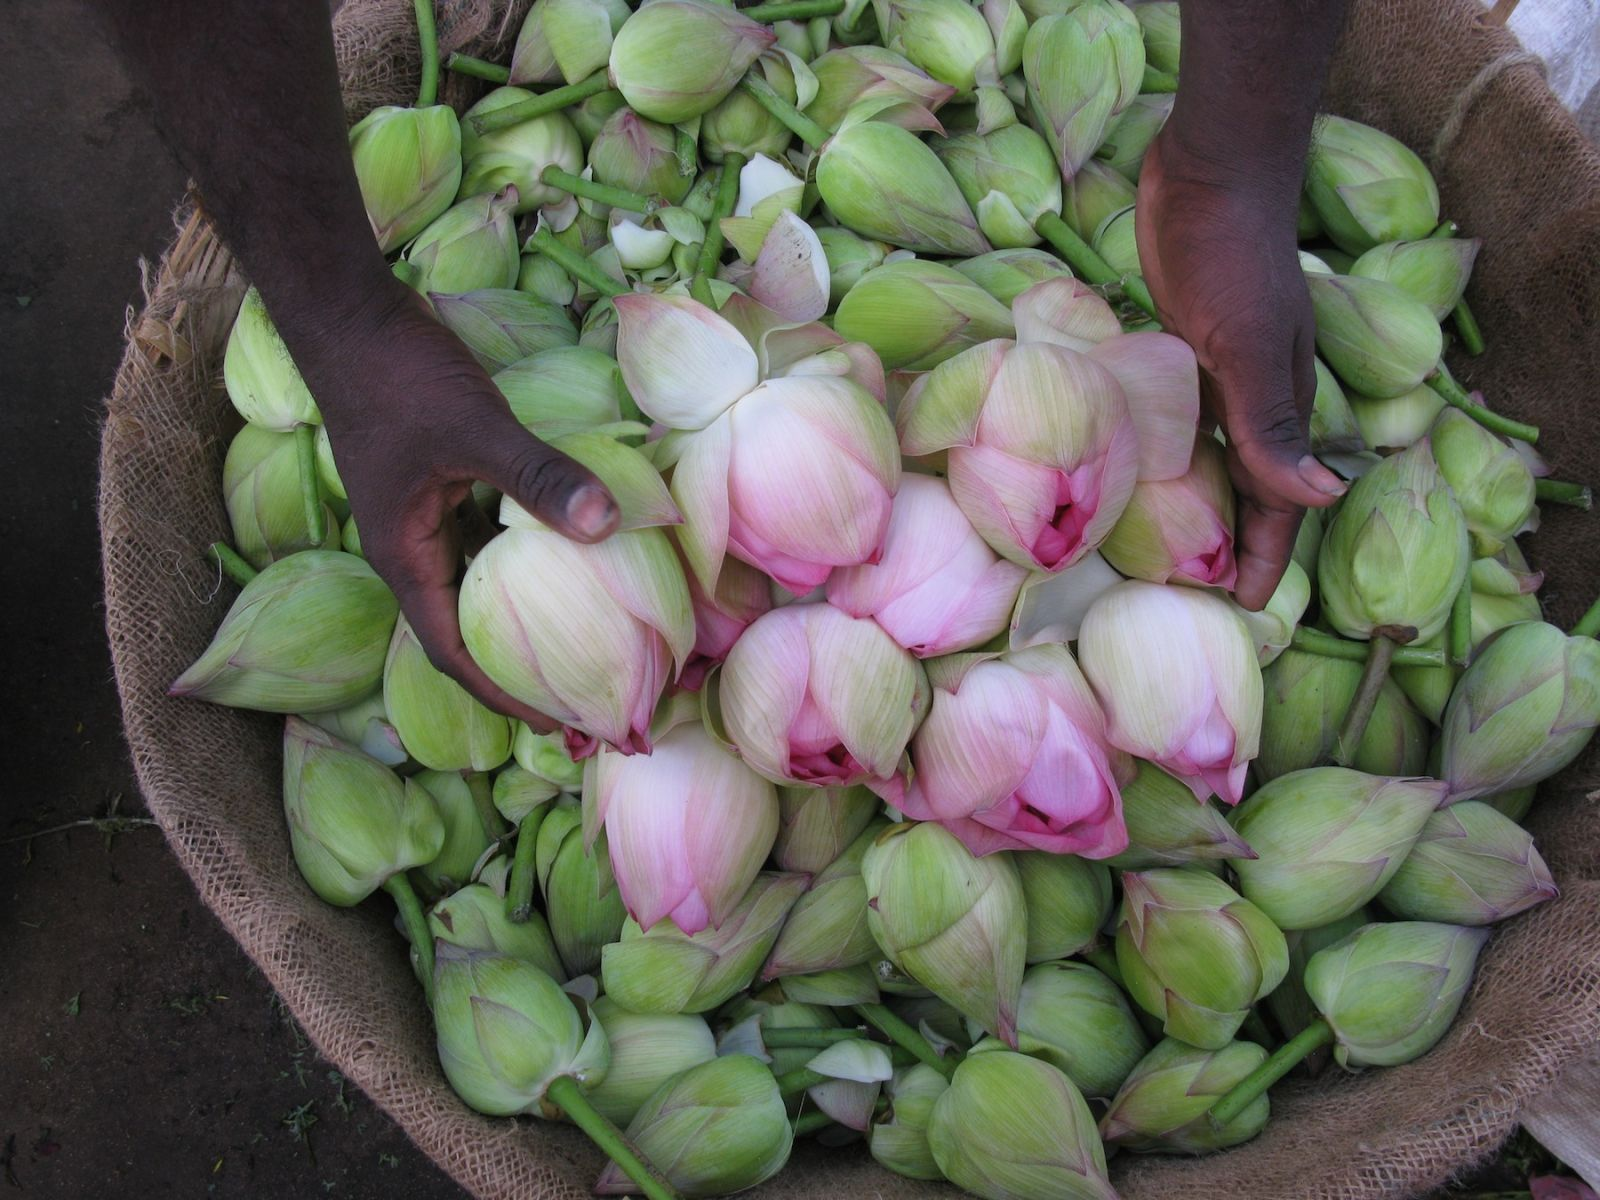 flowers in India